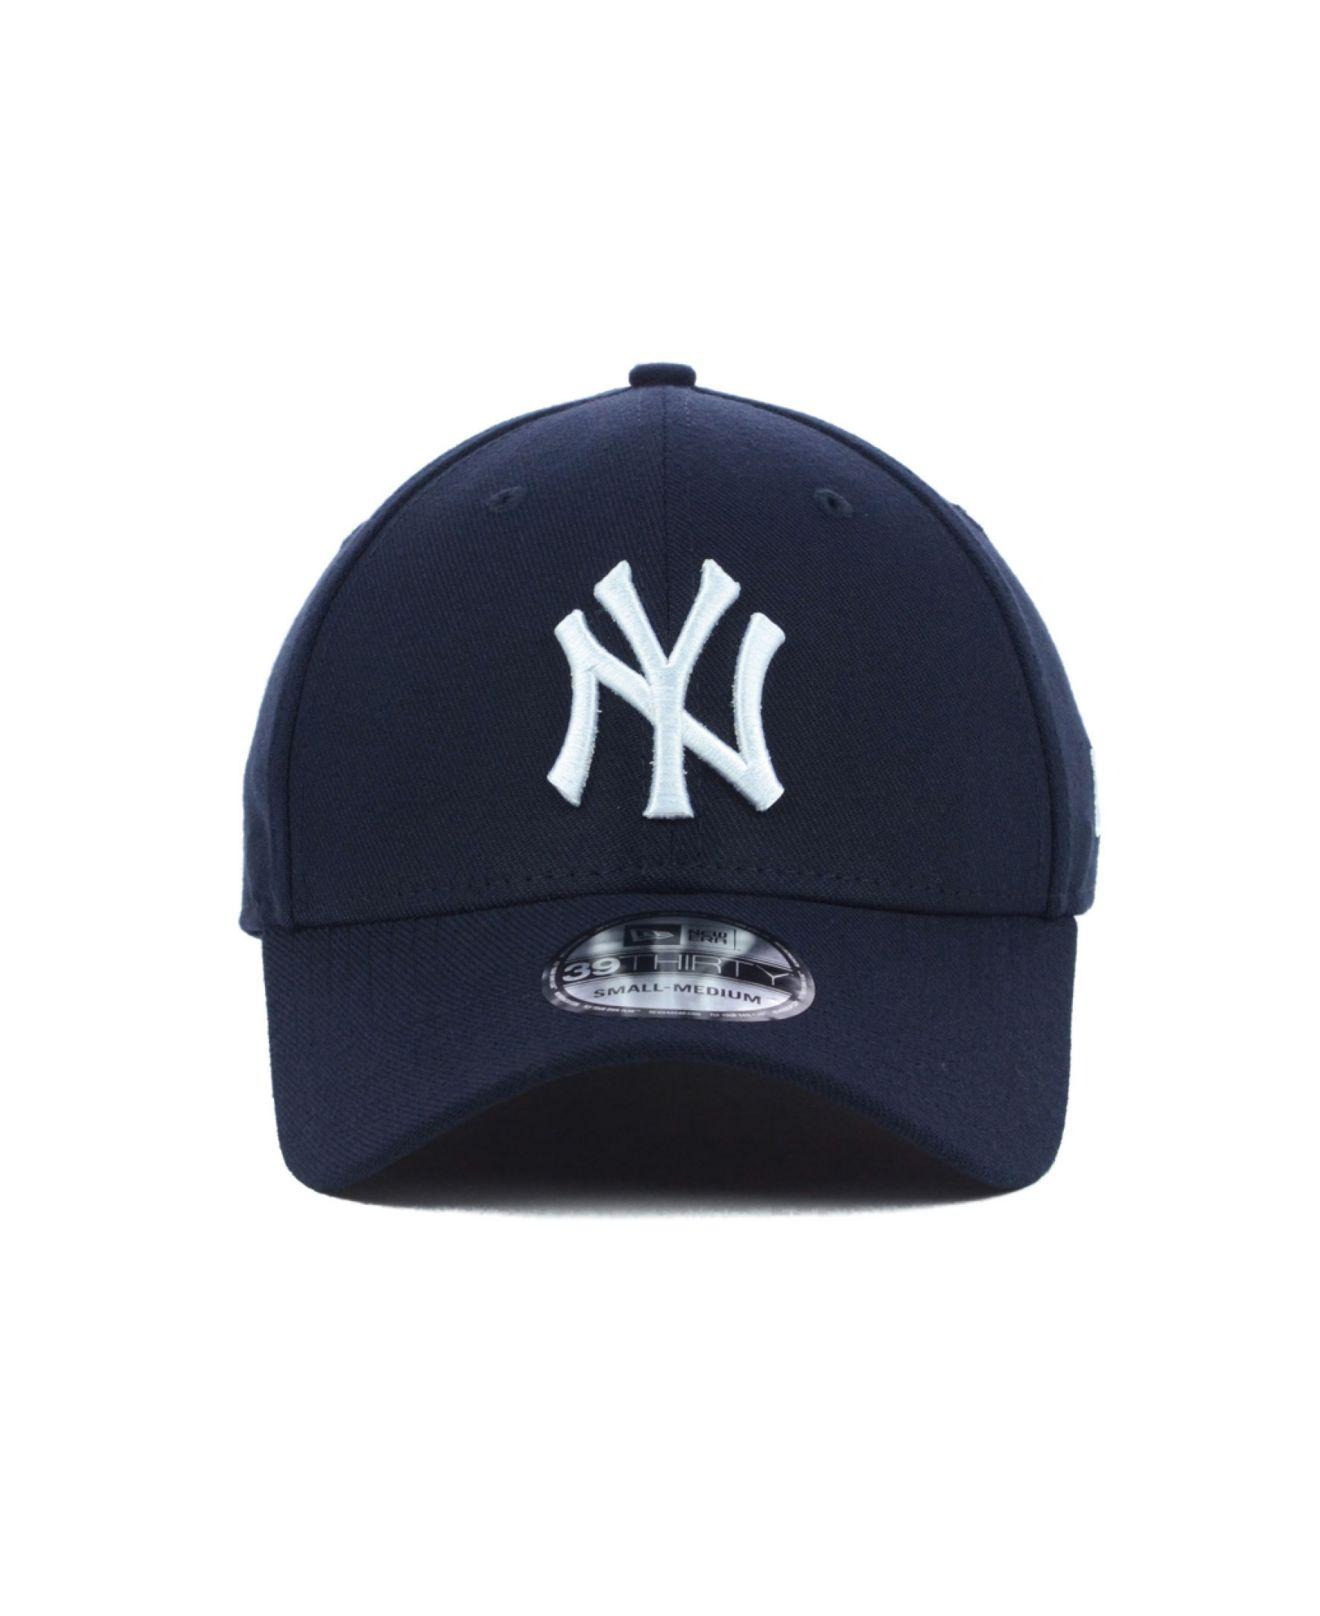 52a72d810d5 Lyst - KTZ New York Yankees Mlb Team Classic 39thirty Cap in Blue for Men